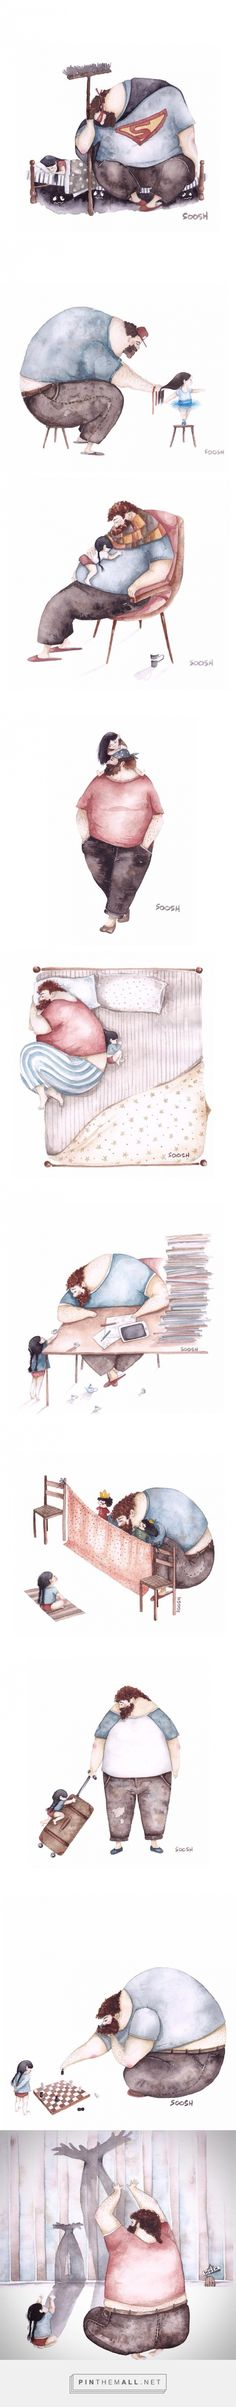 Illustrations about The relationship between Do-it -all Dads And Their Little Girls - Snezhana Soosh, a young painter, has drew beautiful watercolor paintings Children's Book Illustration, Watercolor Illustration, Watercolor Paintings, Art Graphique, Art Plastique, Poster, Illustrators, Art Drawings, Little Girls